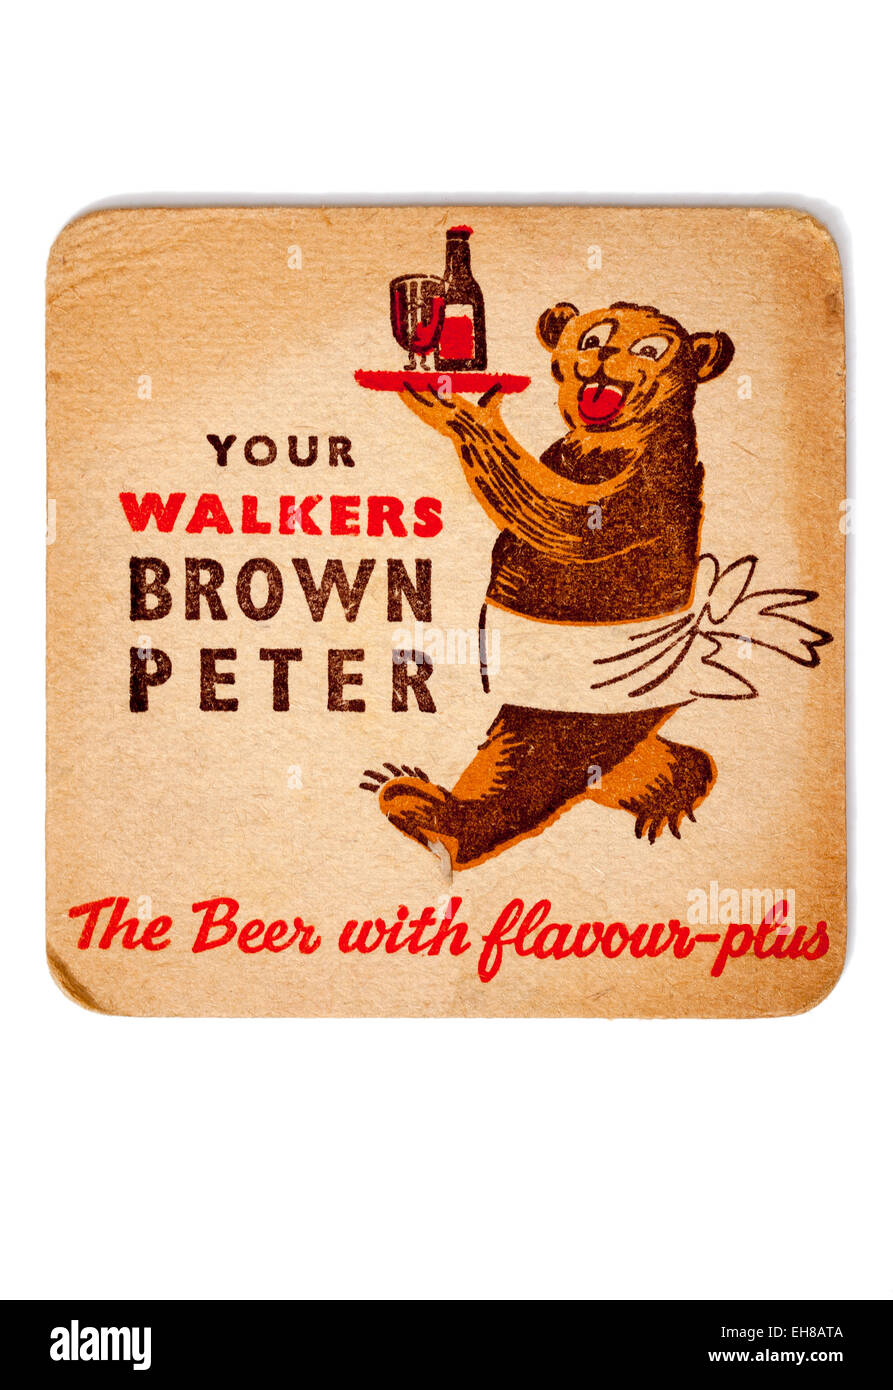 Vintage Beermat Advertising Walkers Brown Peter - Stock Image